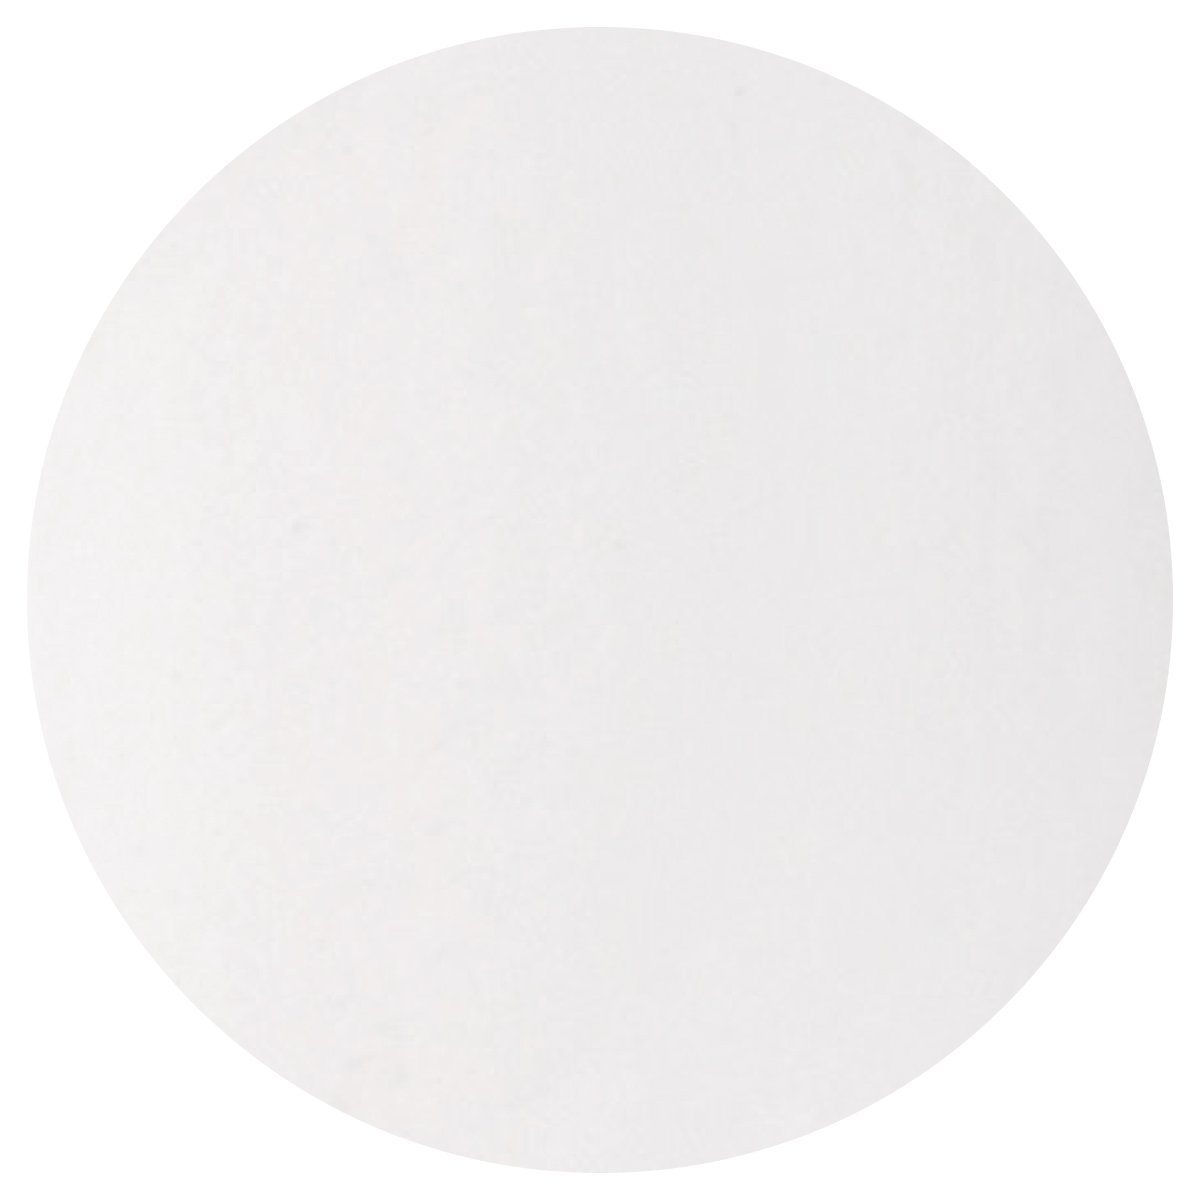 Lithonia Lighting WF6 SQ B LED 50K MW M6 B 14.4W Ultra Thin 6 Square Dimmable Recessed Ceiling 5000K, Daylight in White, 6 inch Baffle, Matte White by Lithonia Lighting (Image #2)